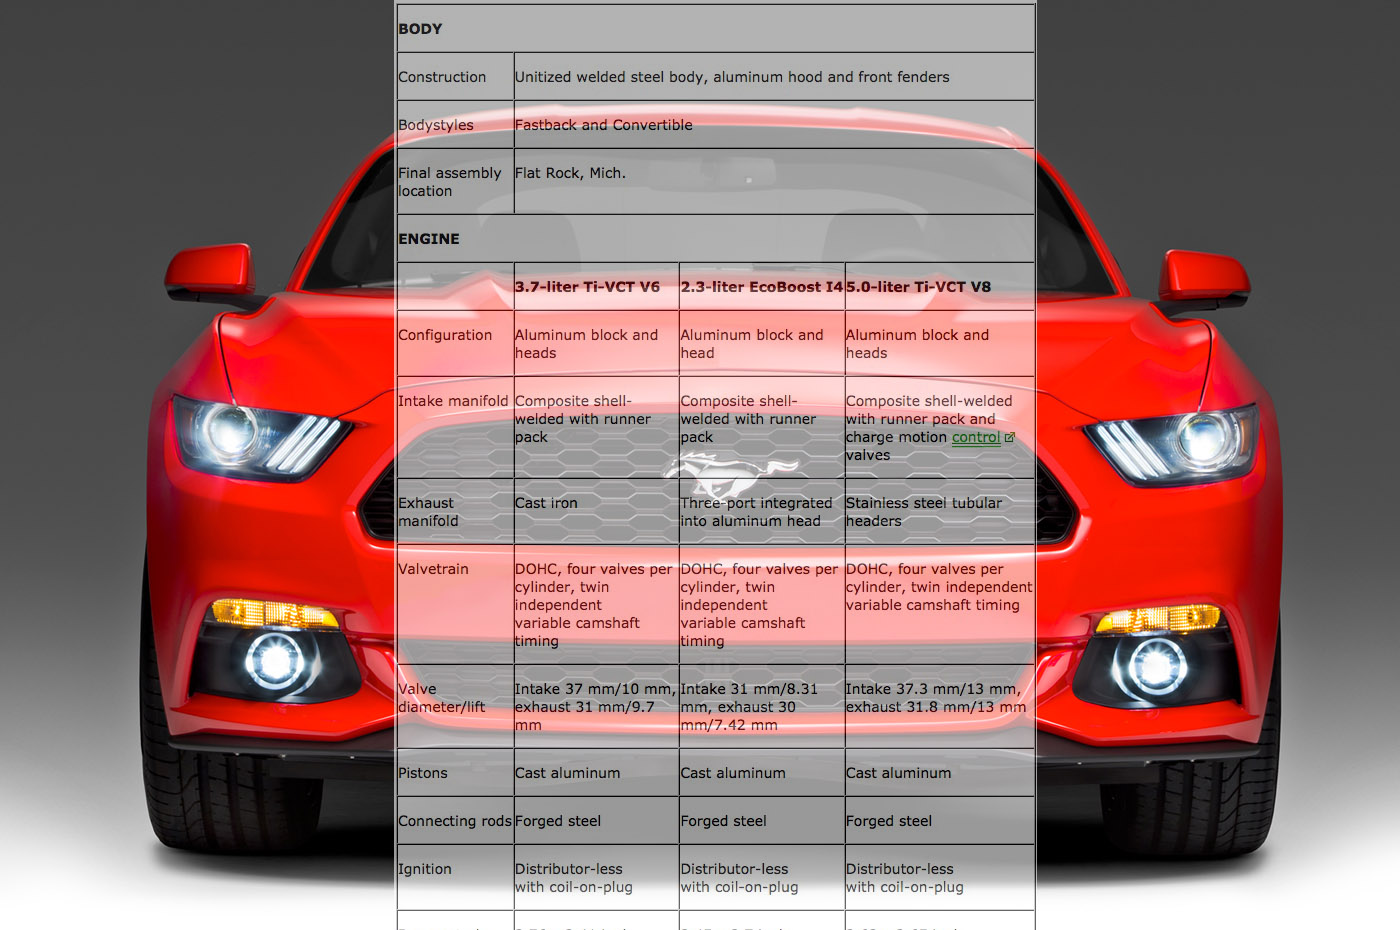 2015 mustang s550 specs and technical info summary gt v6 ecoboost 2015 mustang forum news blog s550 gt gt350 gt500 i4 v6 mustang6g the